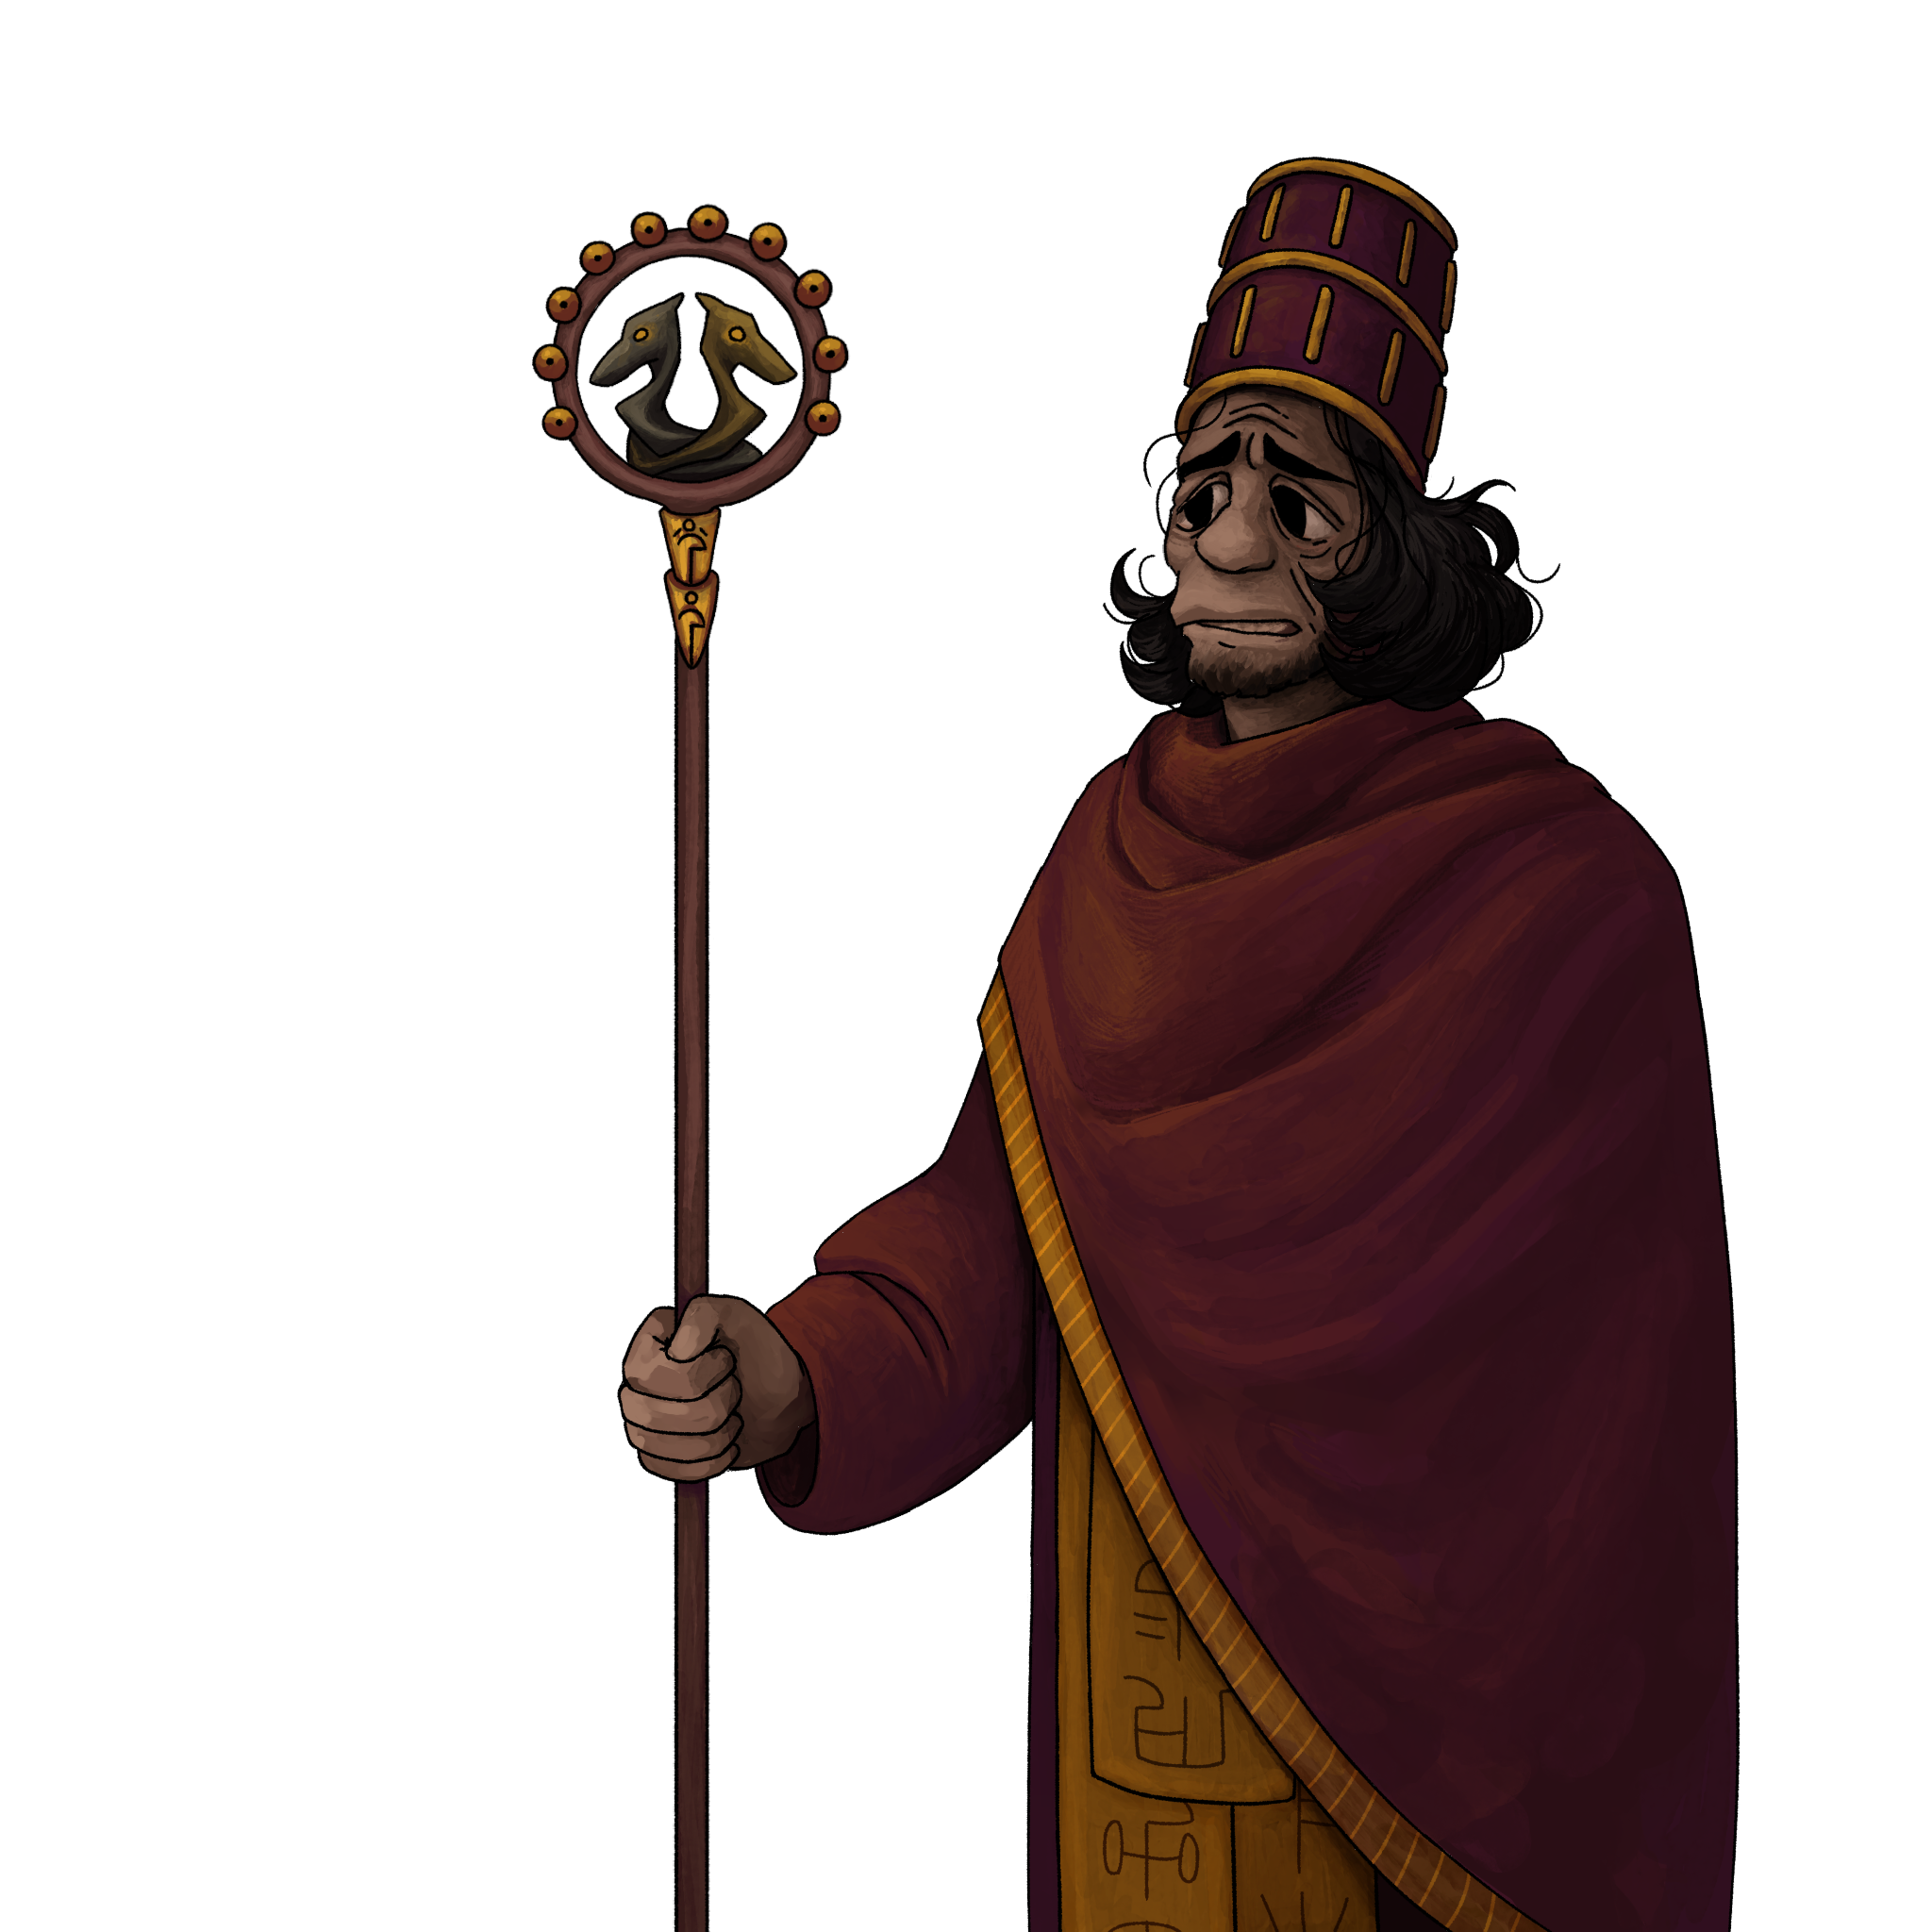 High priest- default face expression